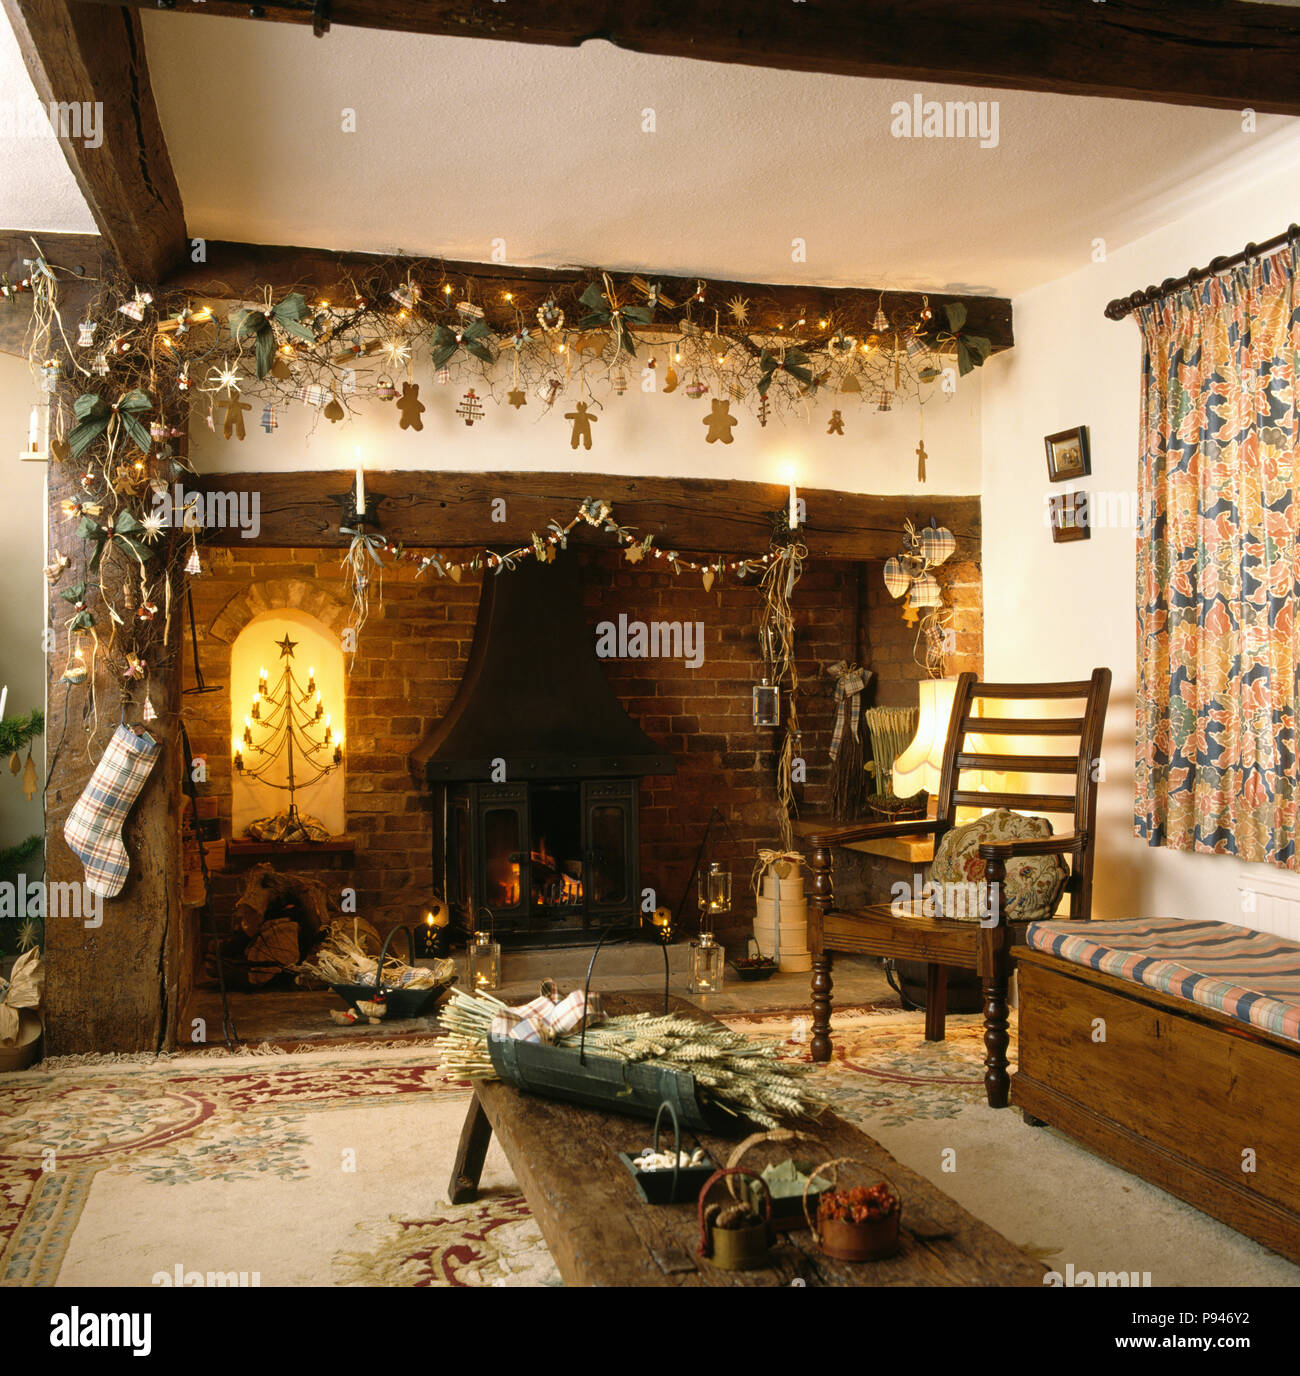 how to decorate a living room with wood burning stove decorating ideas for my small home made christmas decorations on beam above fireplace in cottage